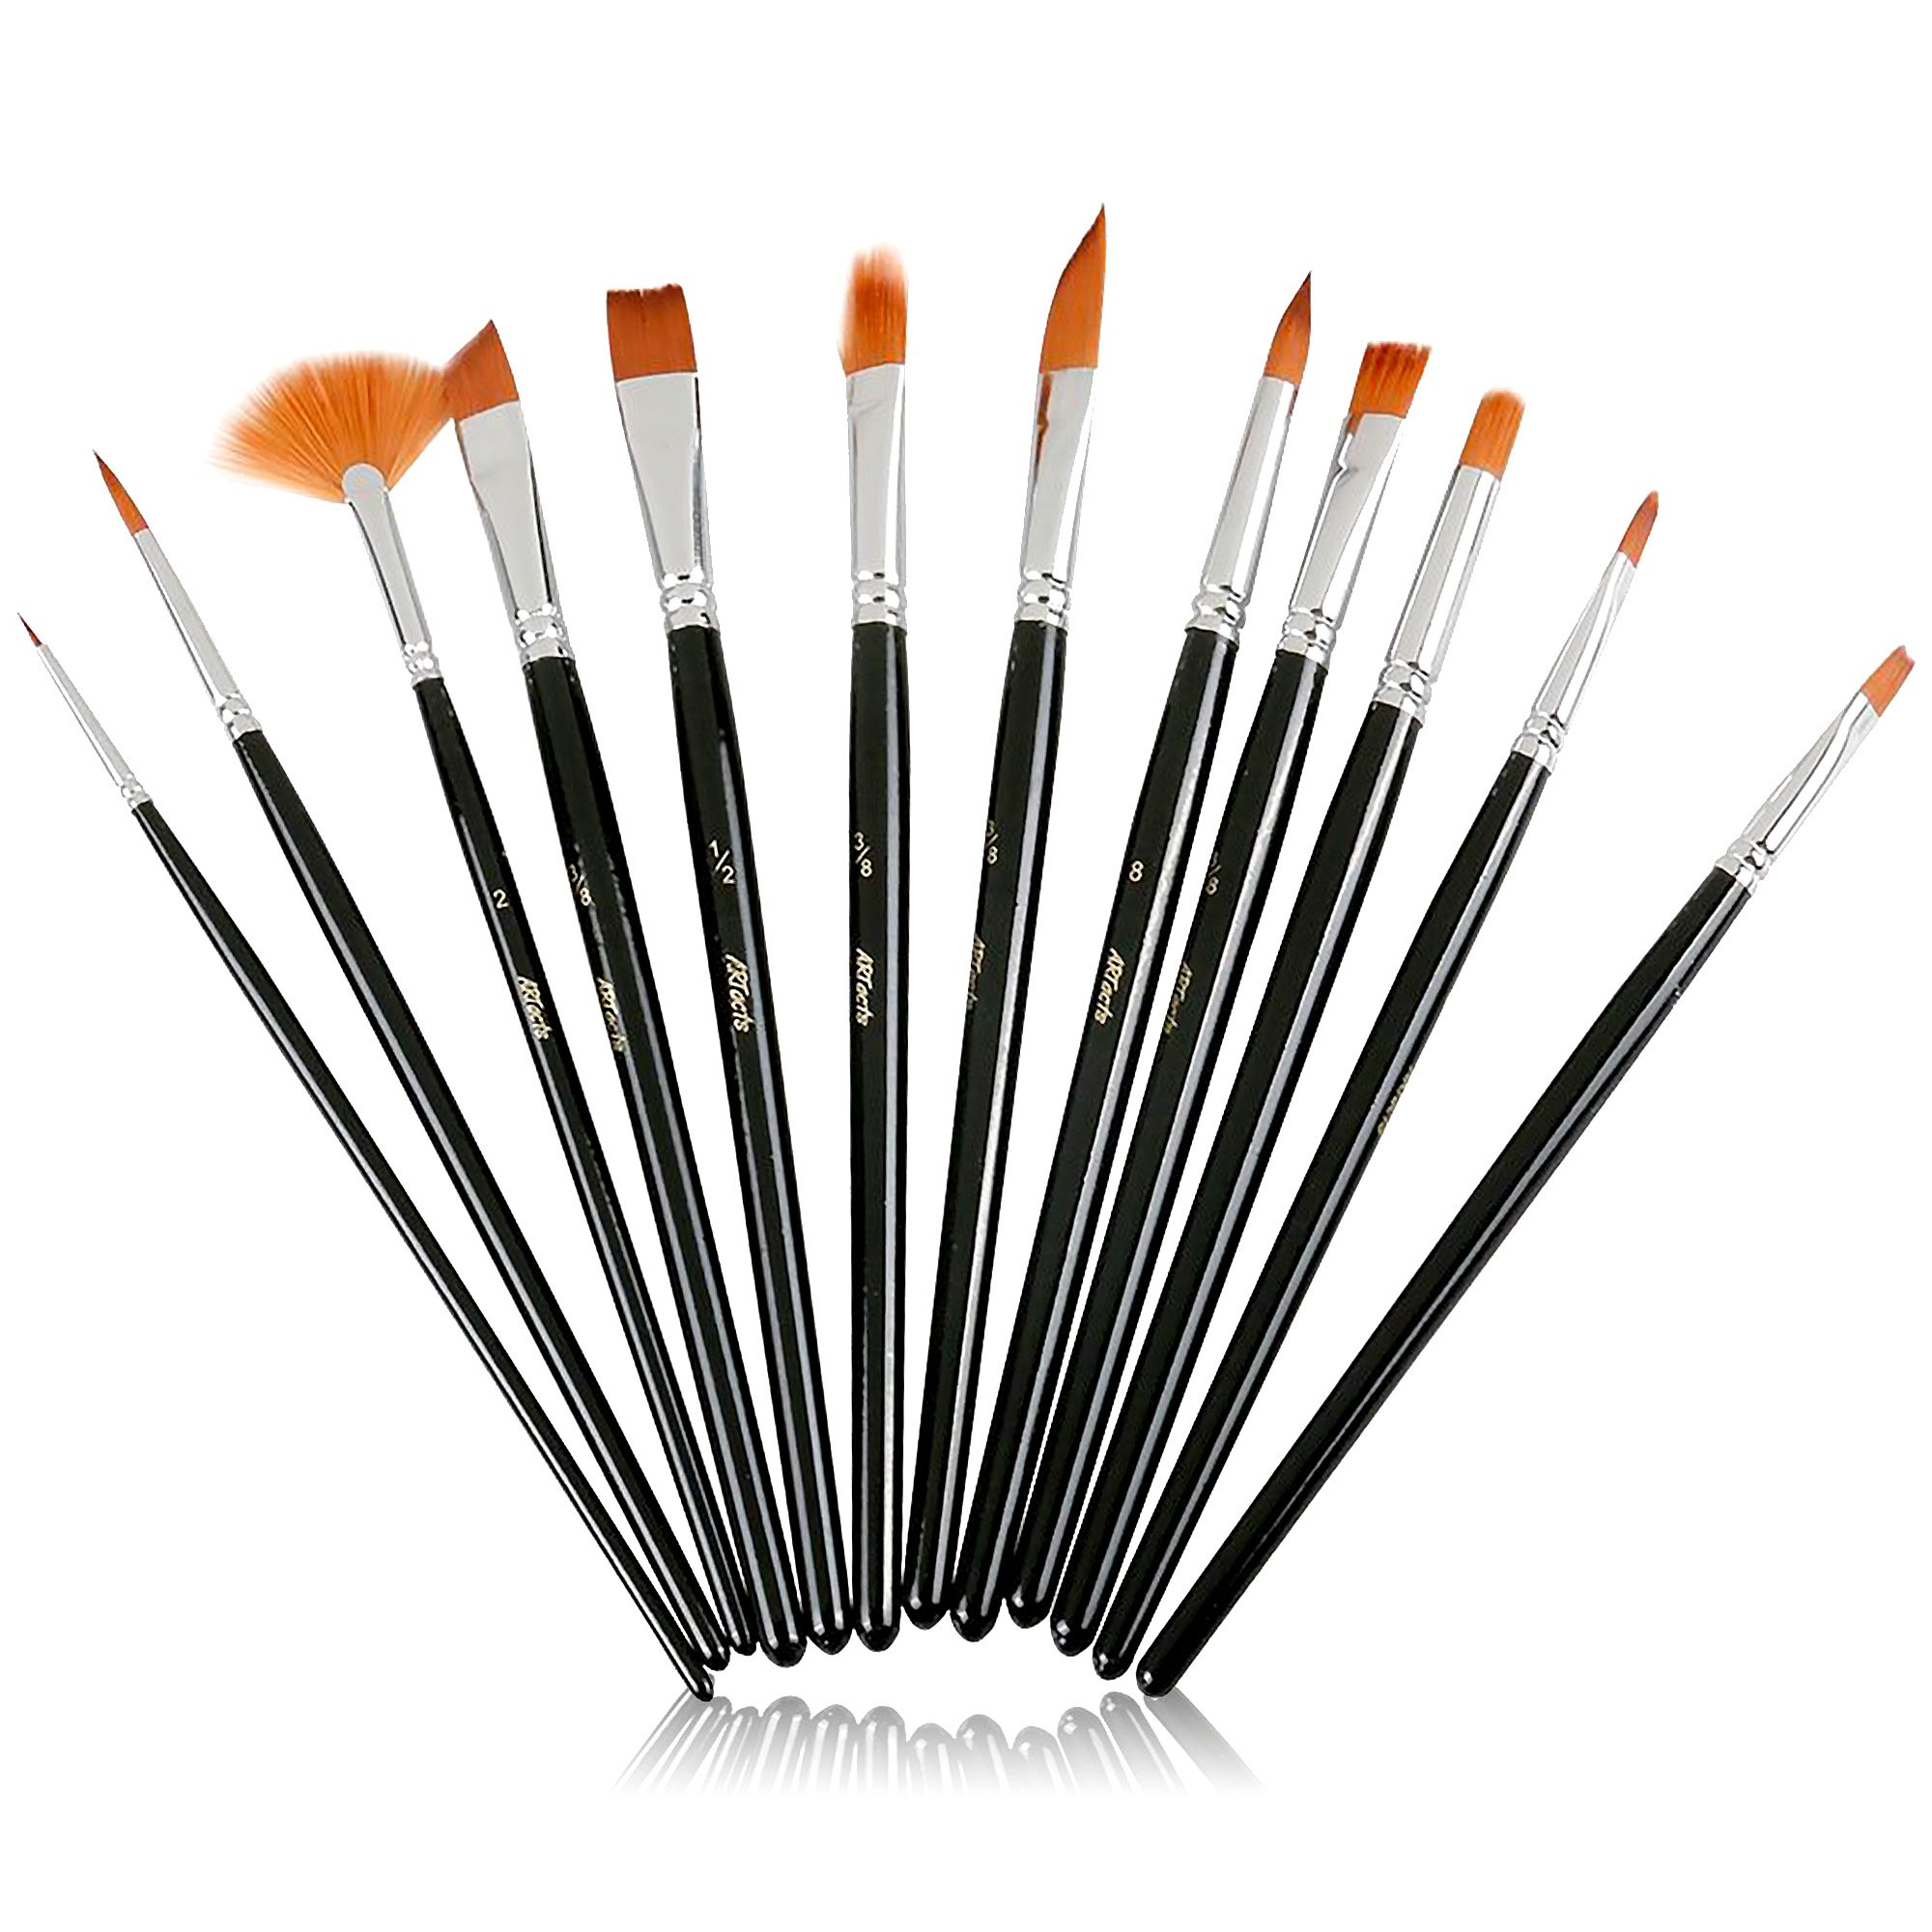 new product 61d31 f6be7 ARTacts -Professional Artist Paint Brush Set for Watercolor, Acrylics, Oil    Face Painting